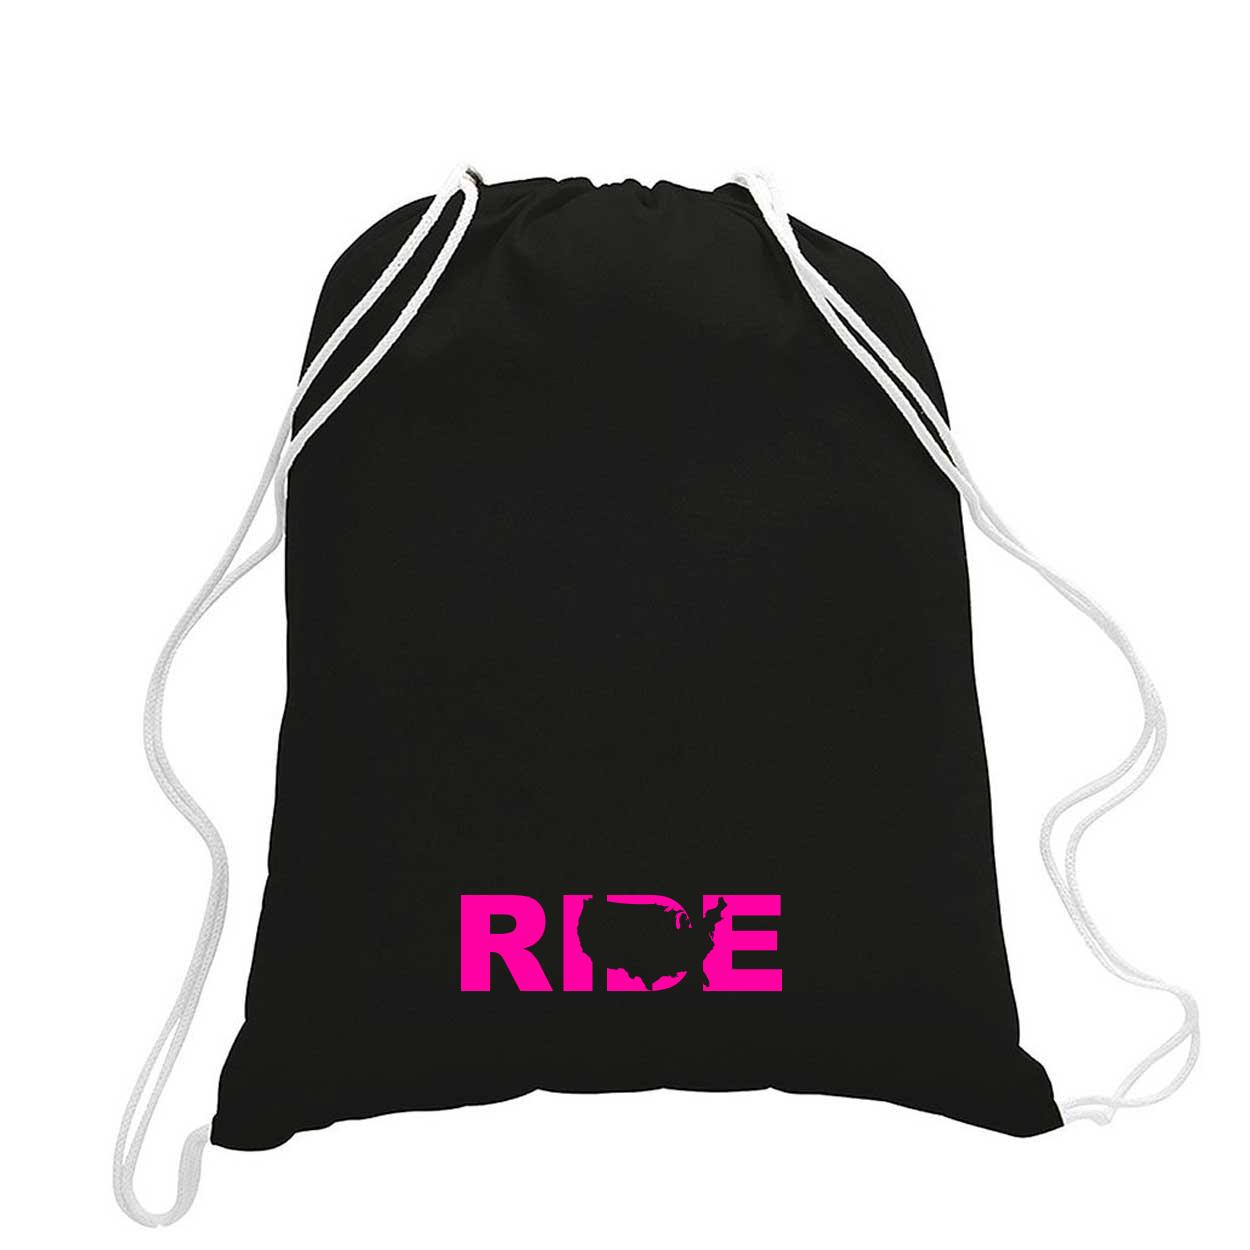 Ride United States Classic Drawstring Sport Pack Bag/Cinch Sack Black (Pink Logo)